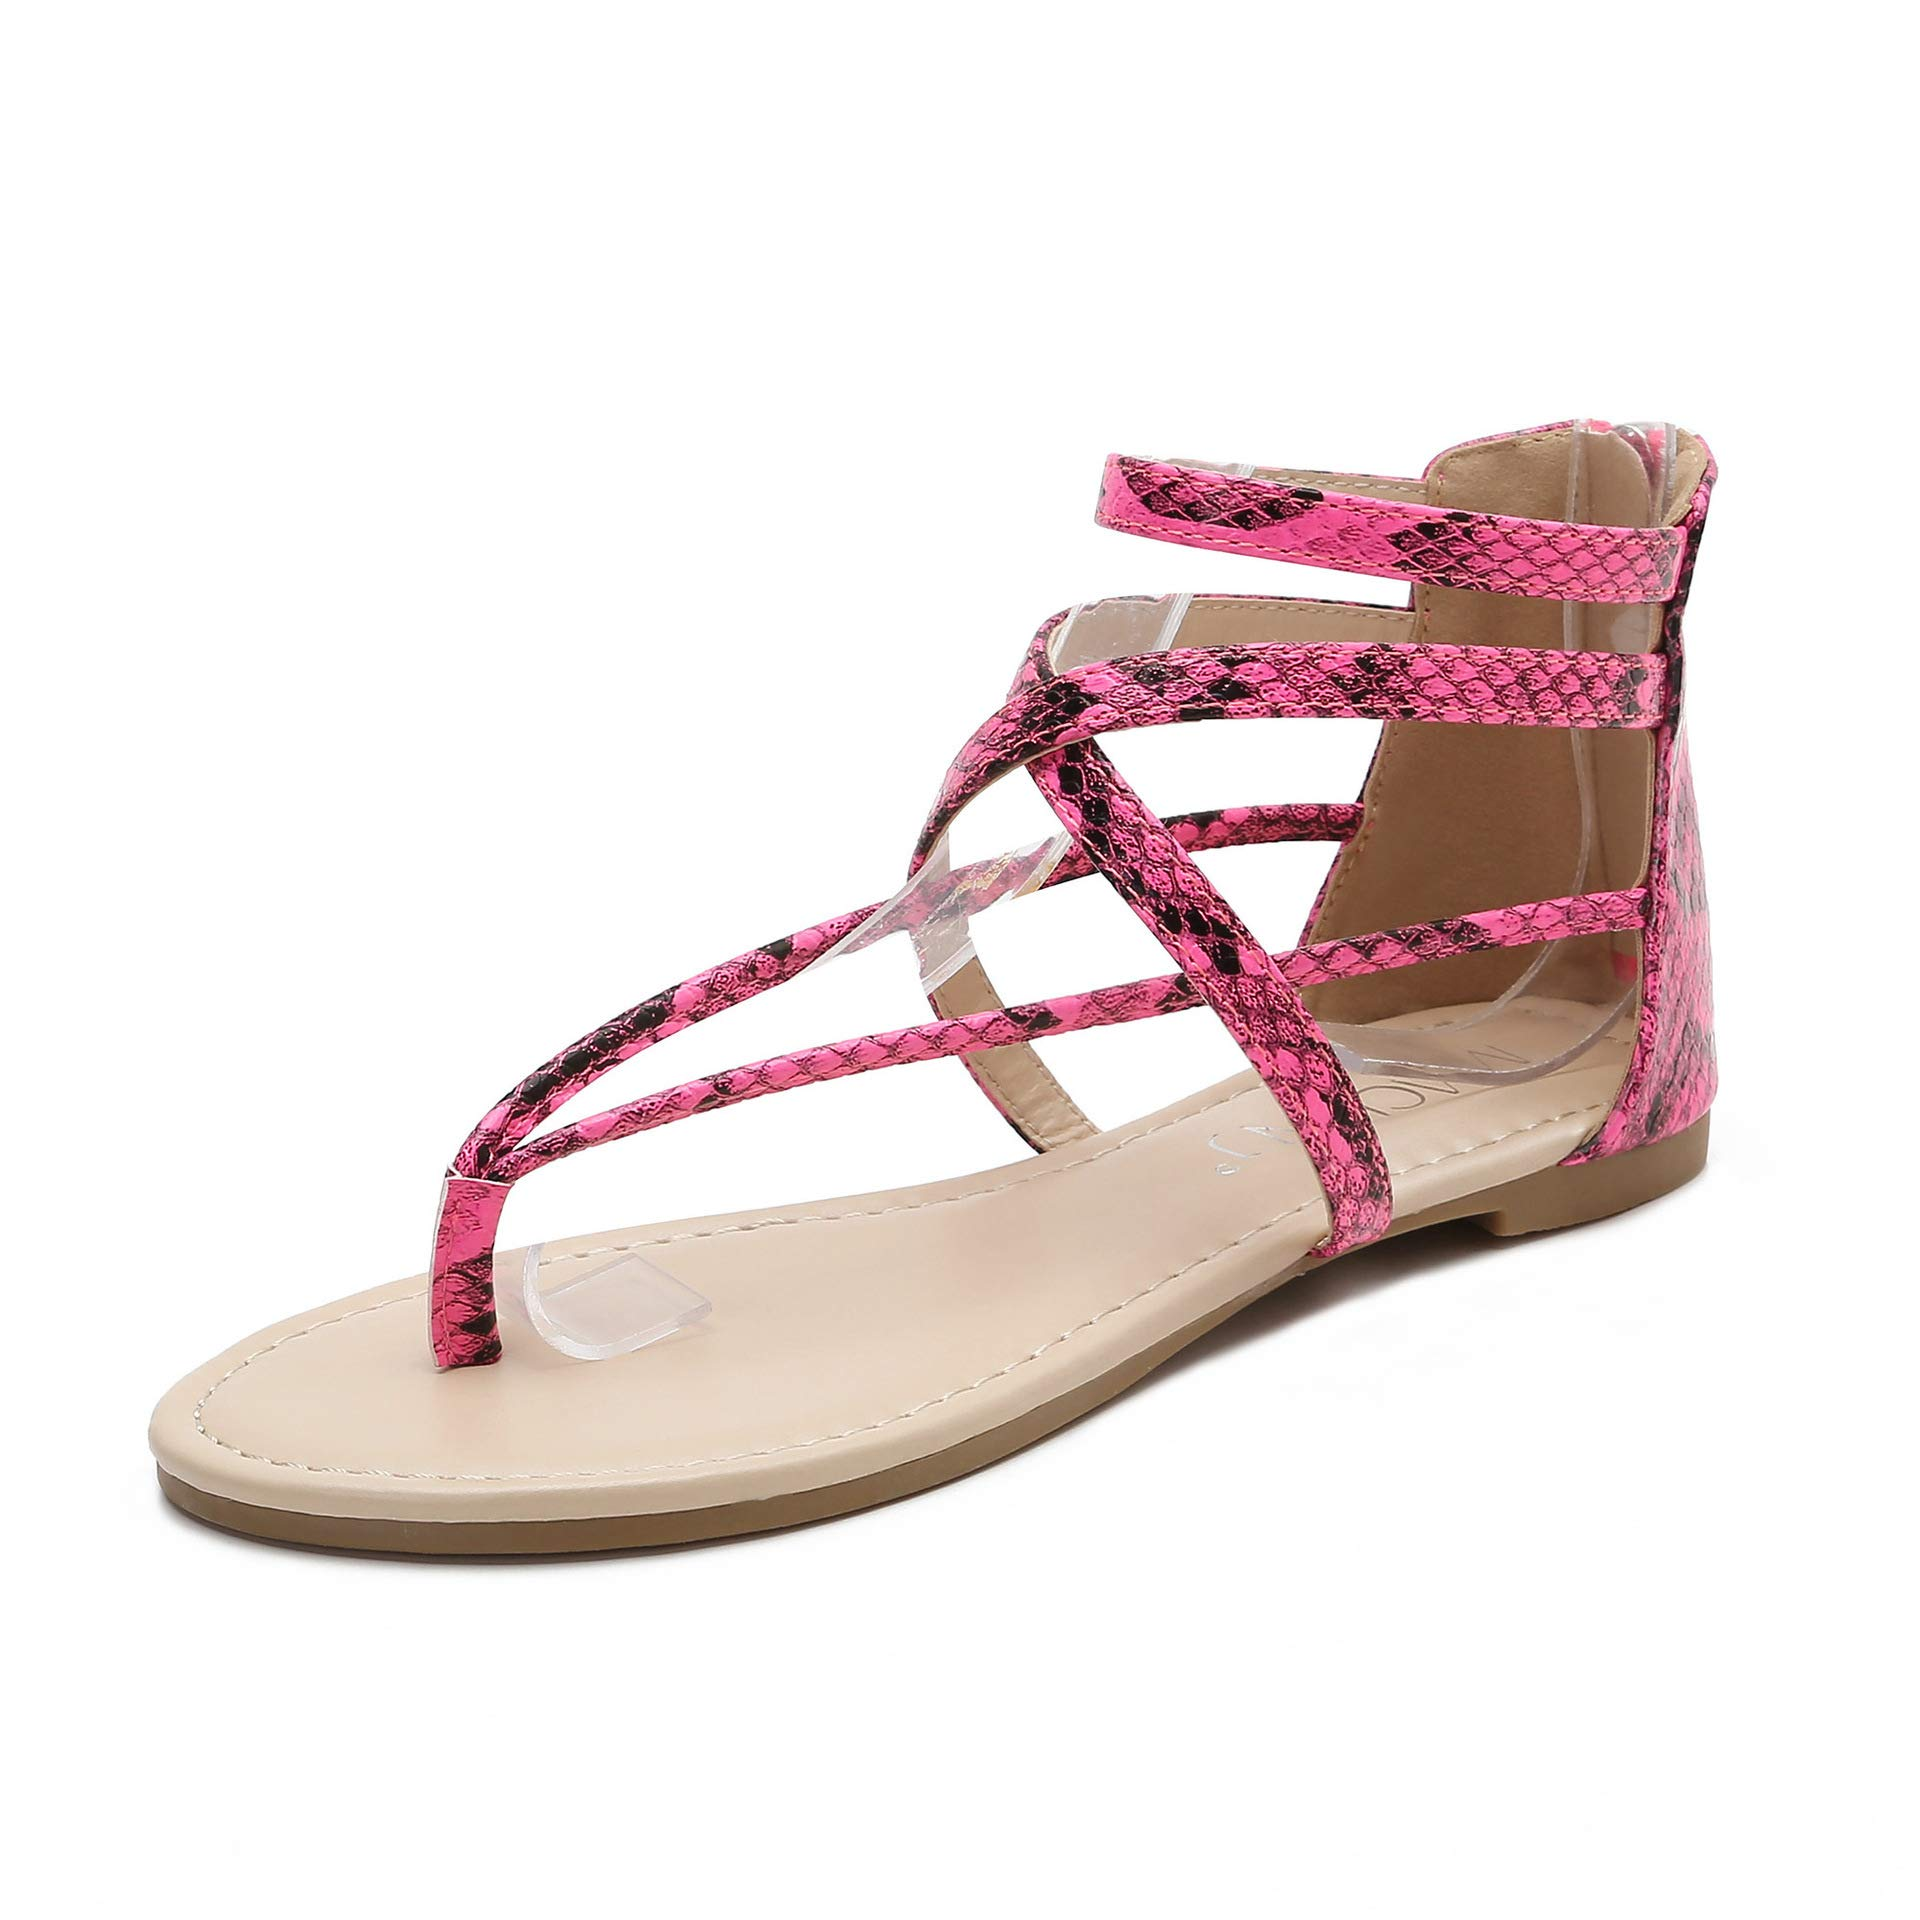 MACKIN J 566-1 Women's Gladiator Sandals Thong Flats Ankle Strap Zip Flat Sandals